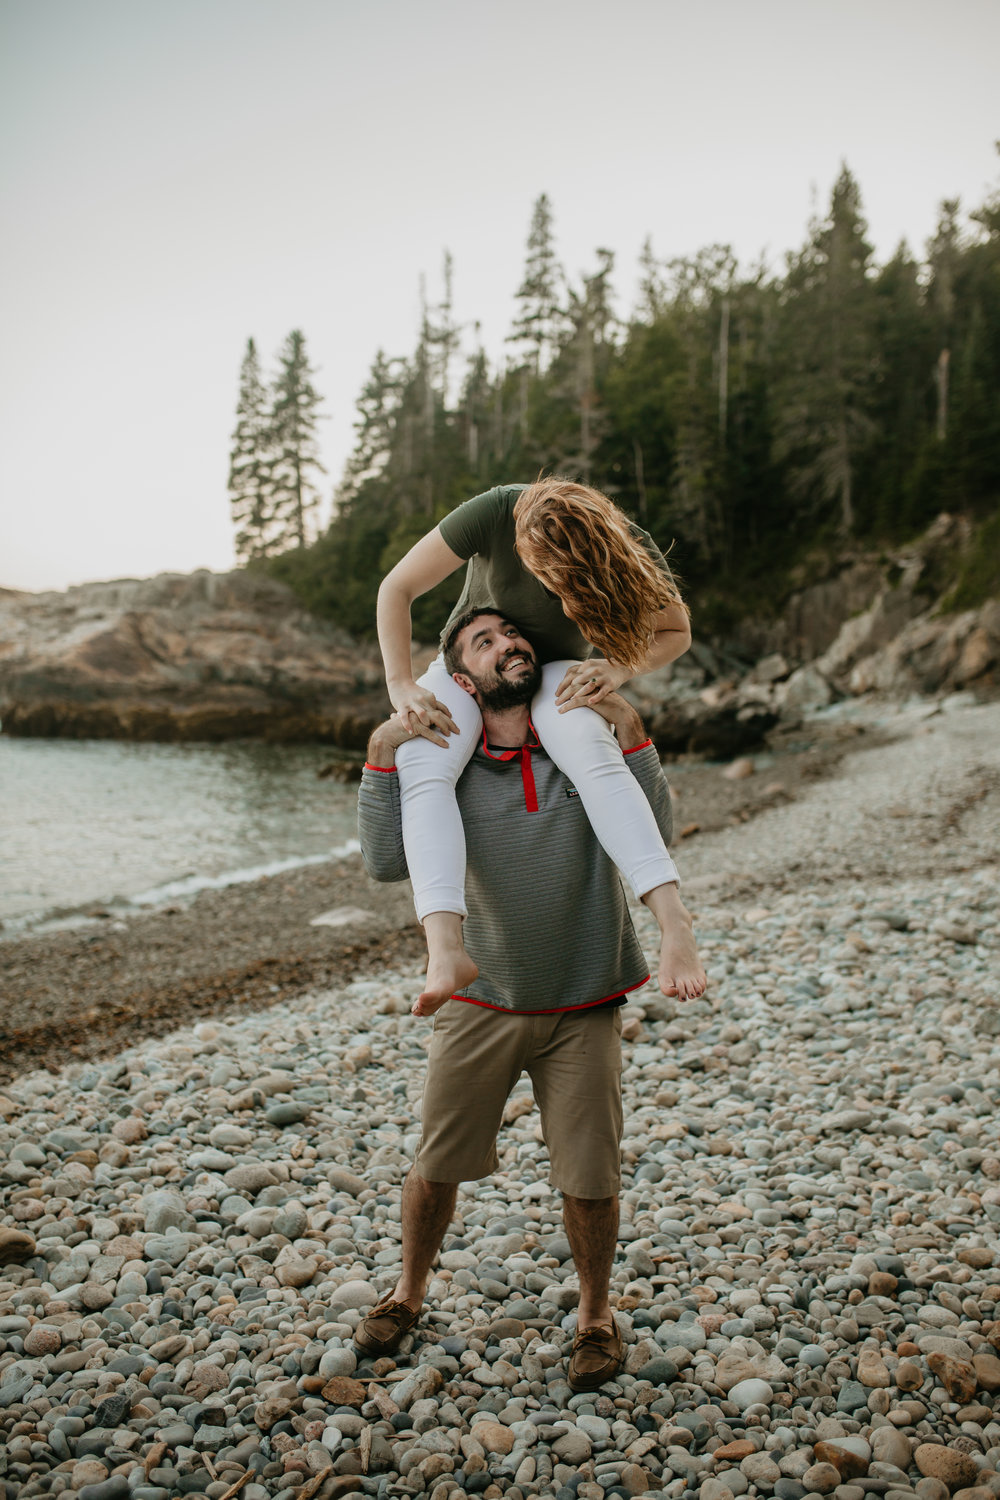 nicole-daacke-photography-acadia-national-park-engagement-photos-session-little-hunters-beach-sunset-cadillac-mountain-thunder-hole-otter-cliffs-couples-session-acadia-elopement-photographer-pine-trees-ocean-maine-52.jpg